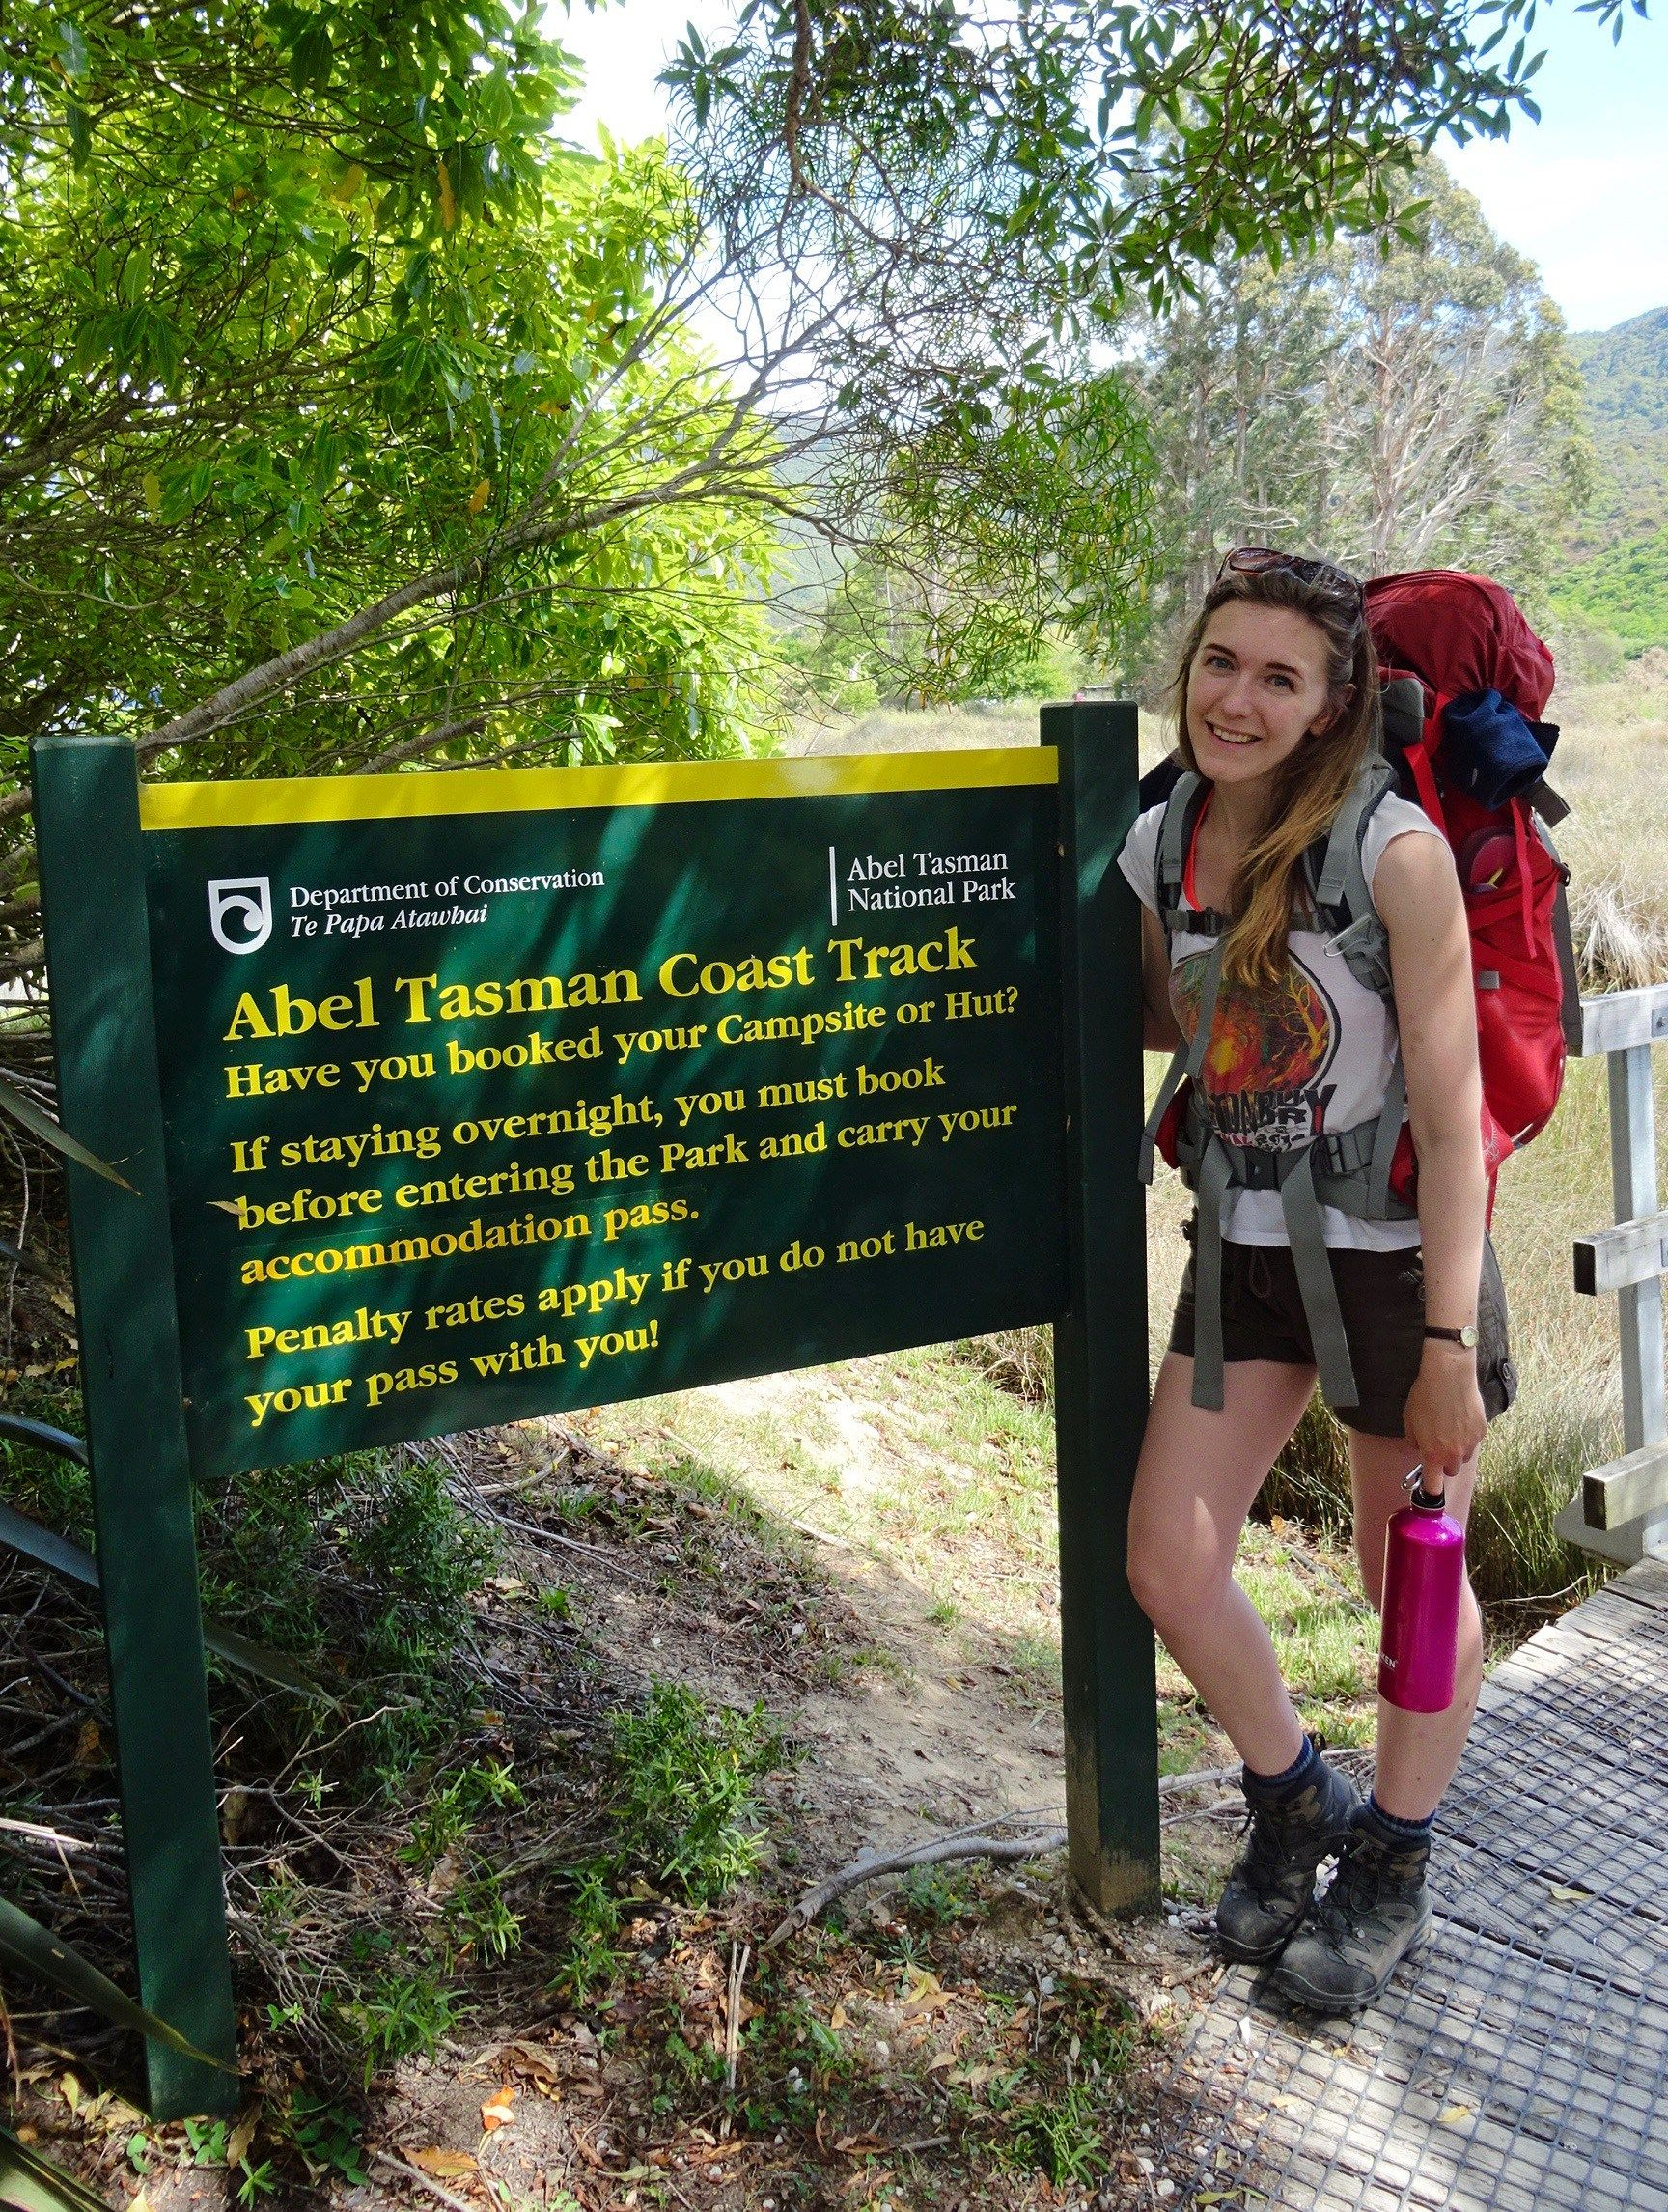 Thinking about hiking in New Zealand? Here are some top tips you should know before you go | spinthewindrose.com | #newzealand #hiking #outdoors